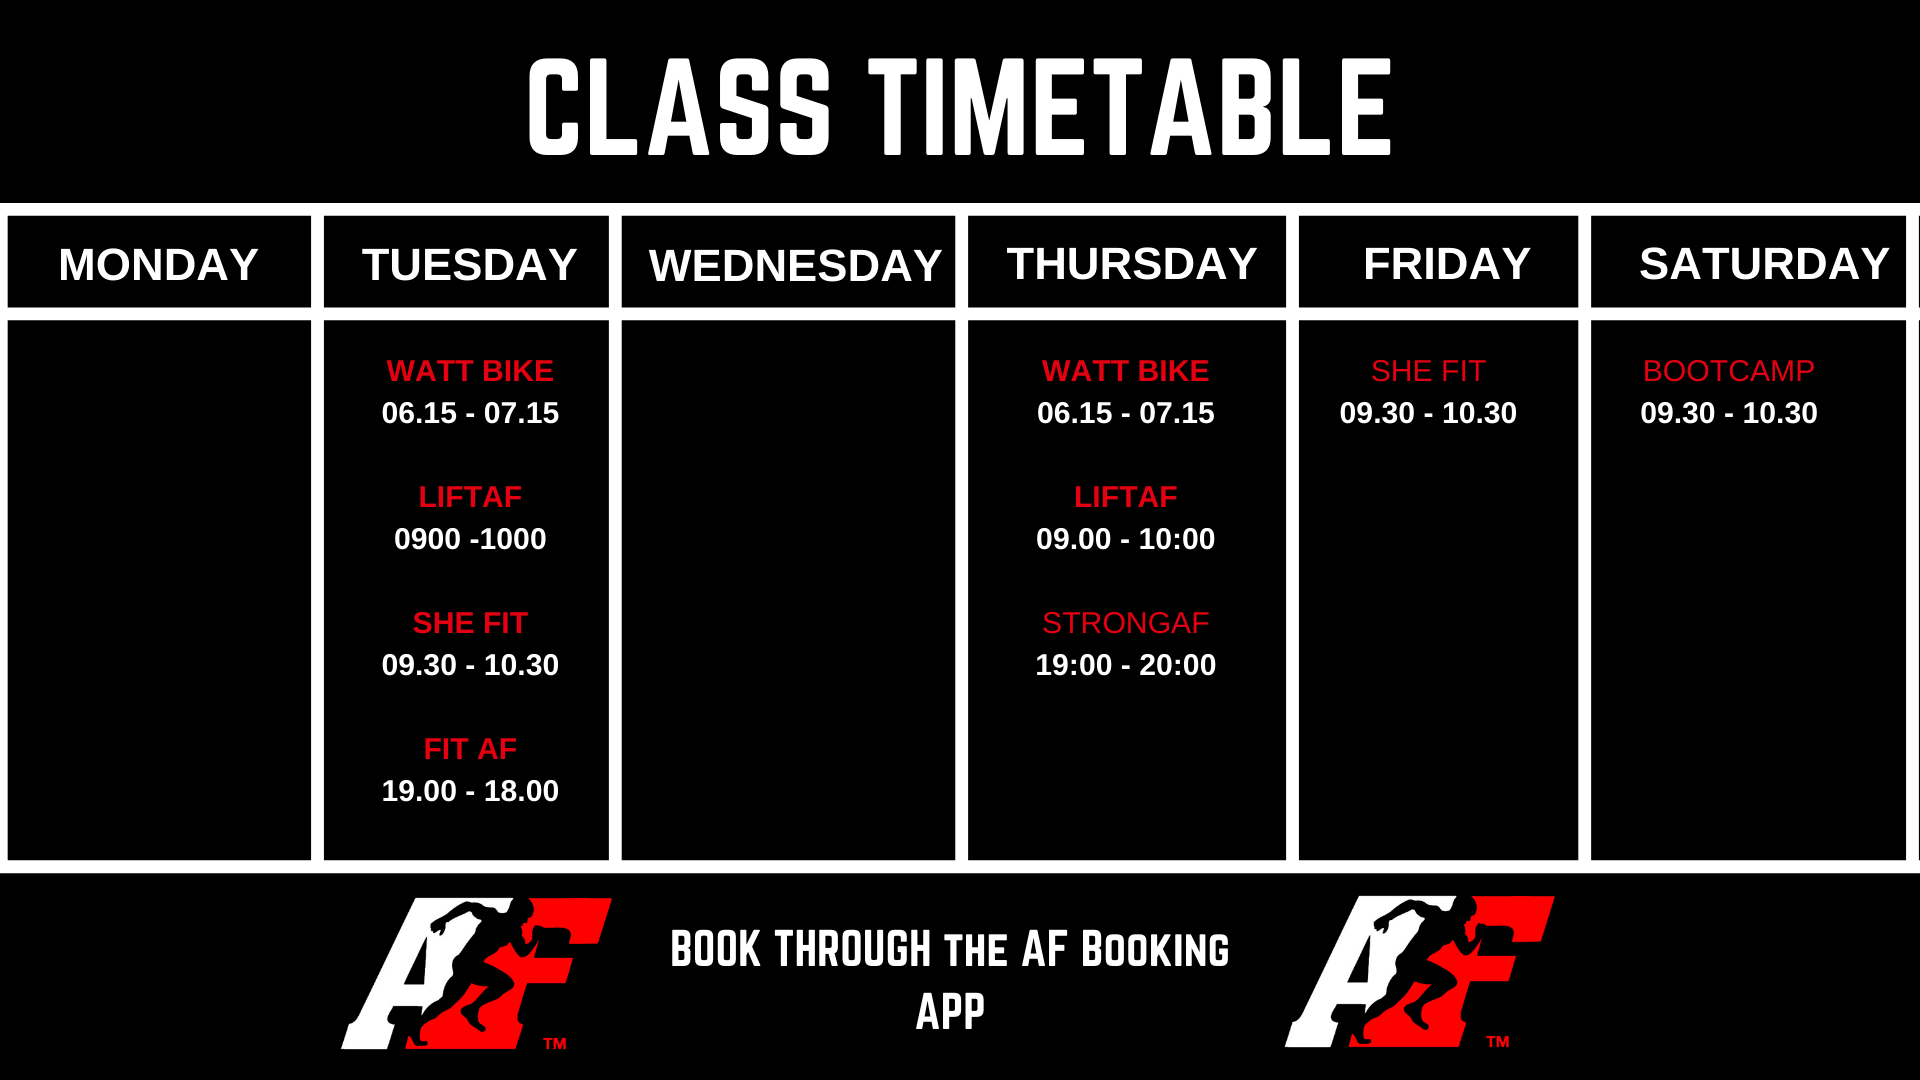 NEW CLASS TIME TABLE 2021